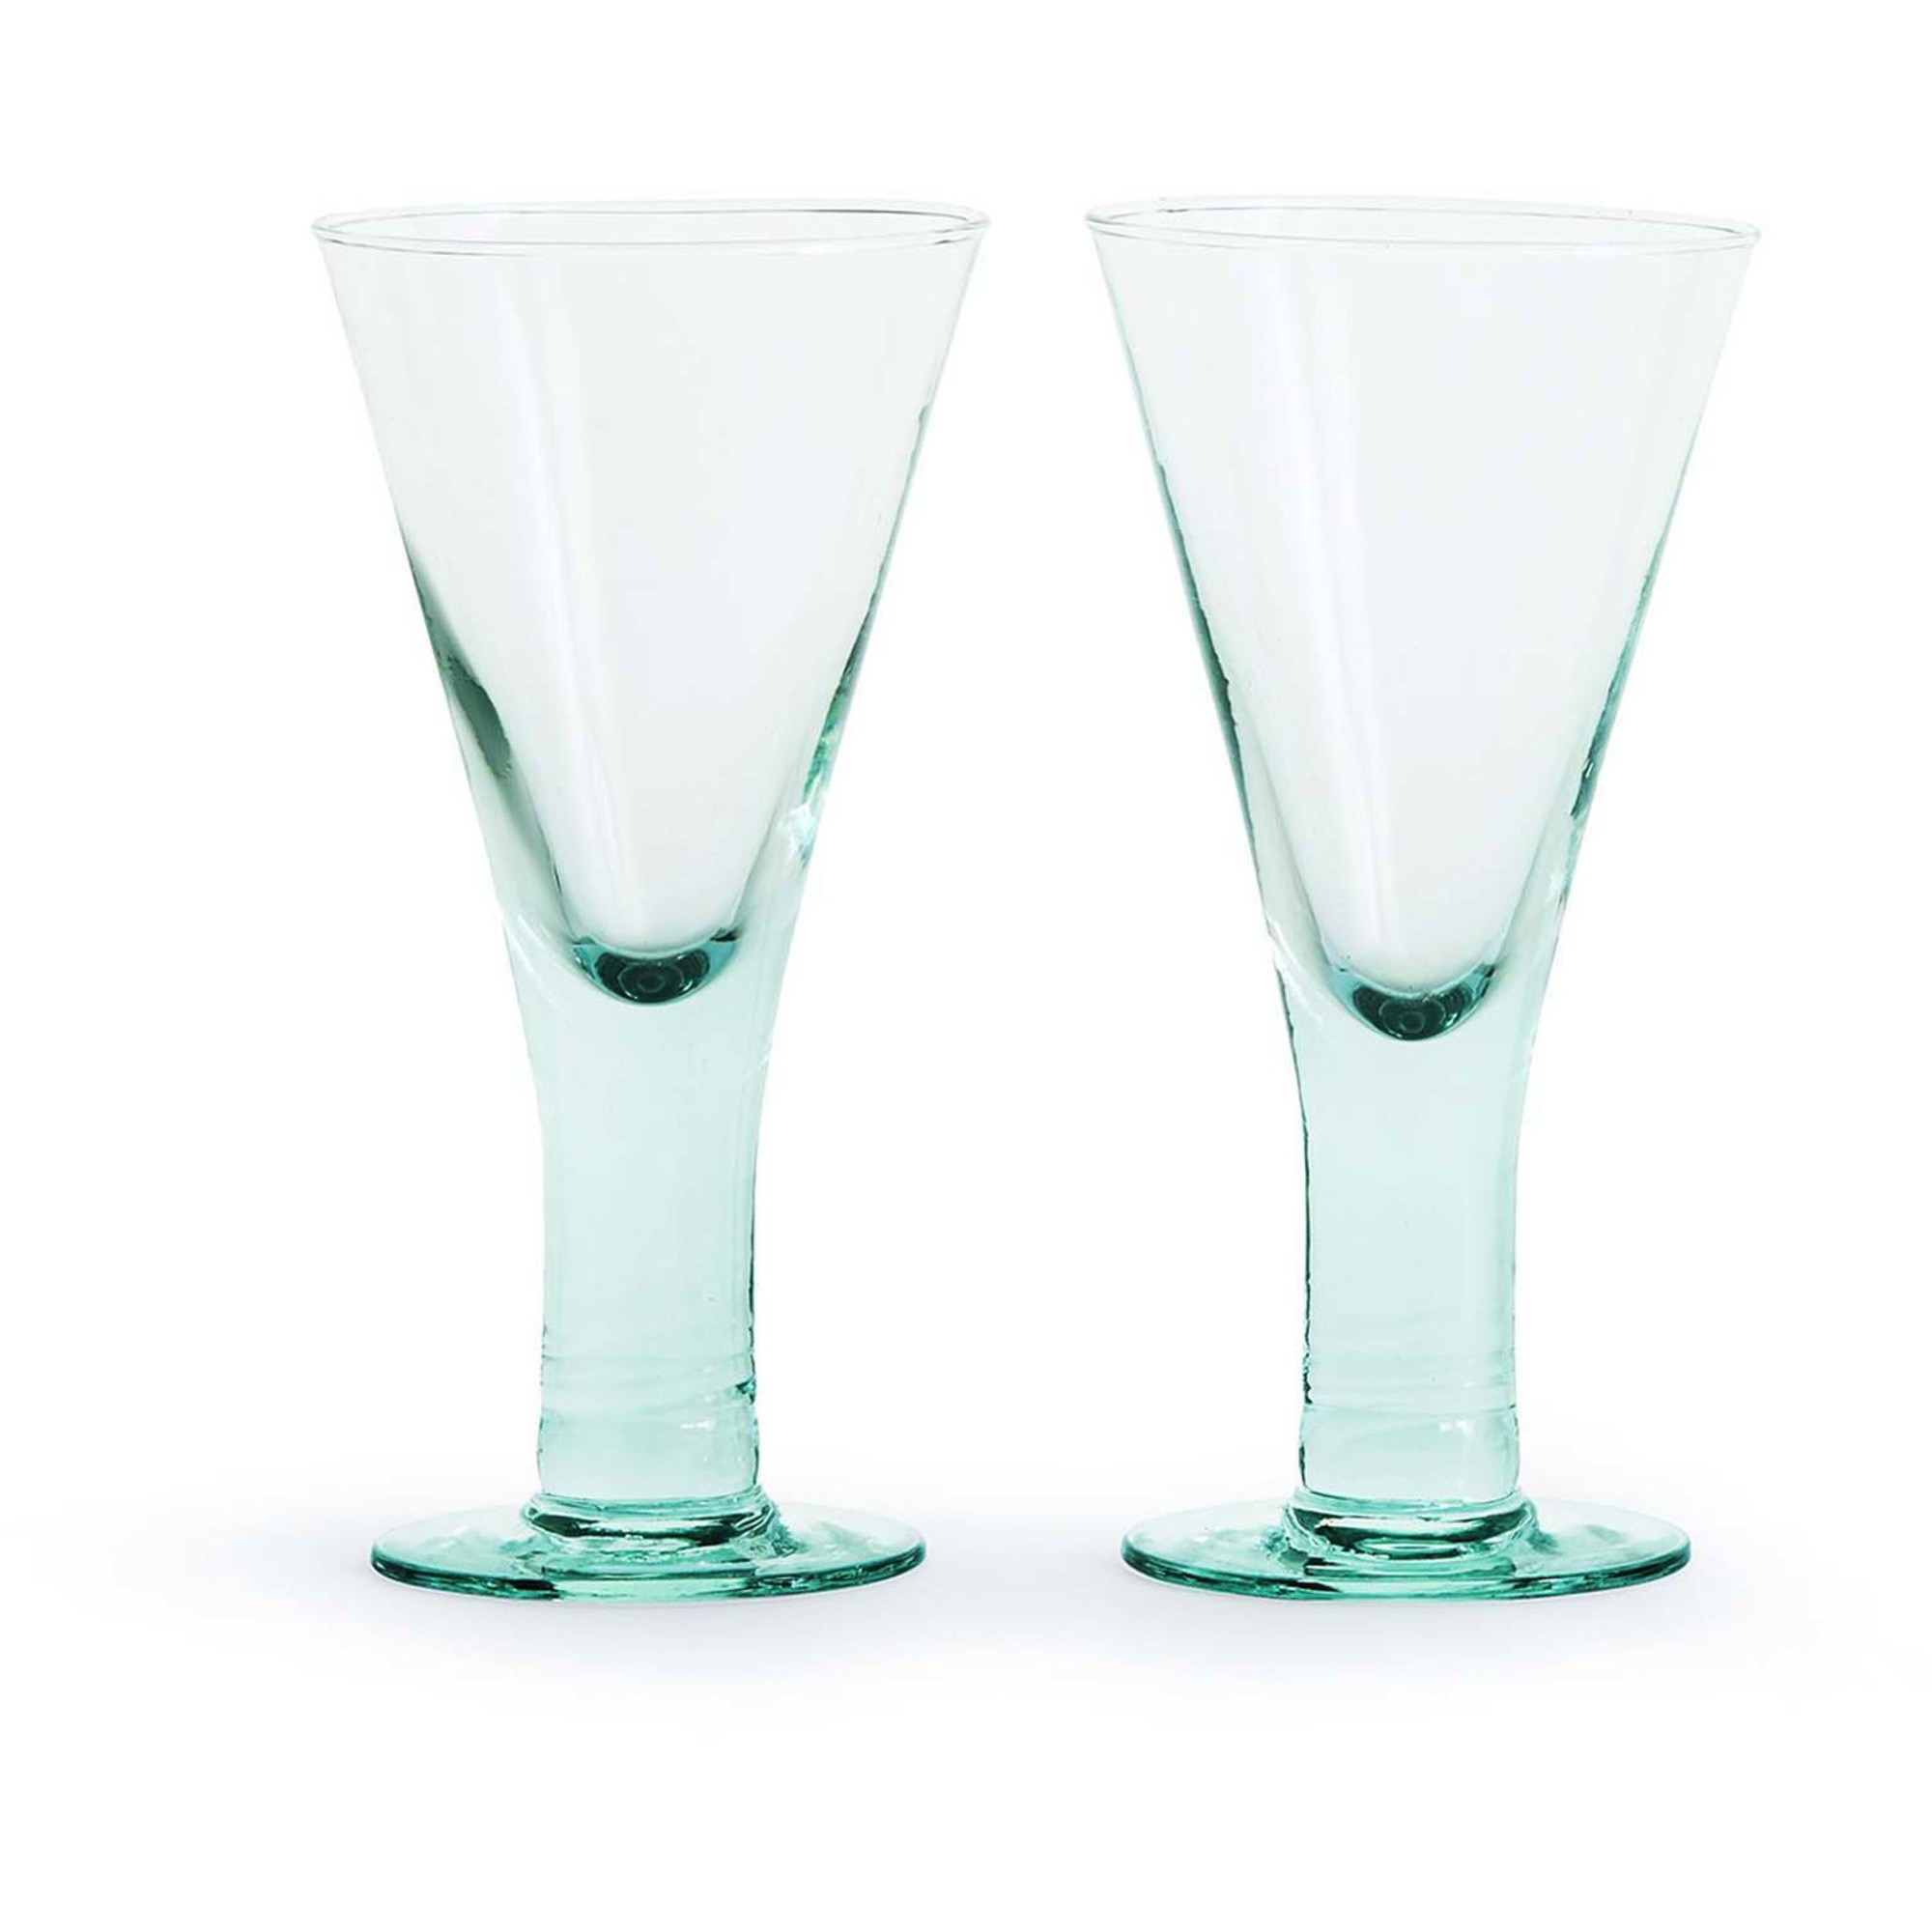 Sagaform Eco vin glas 2-pack